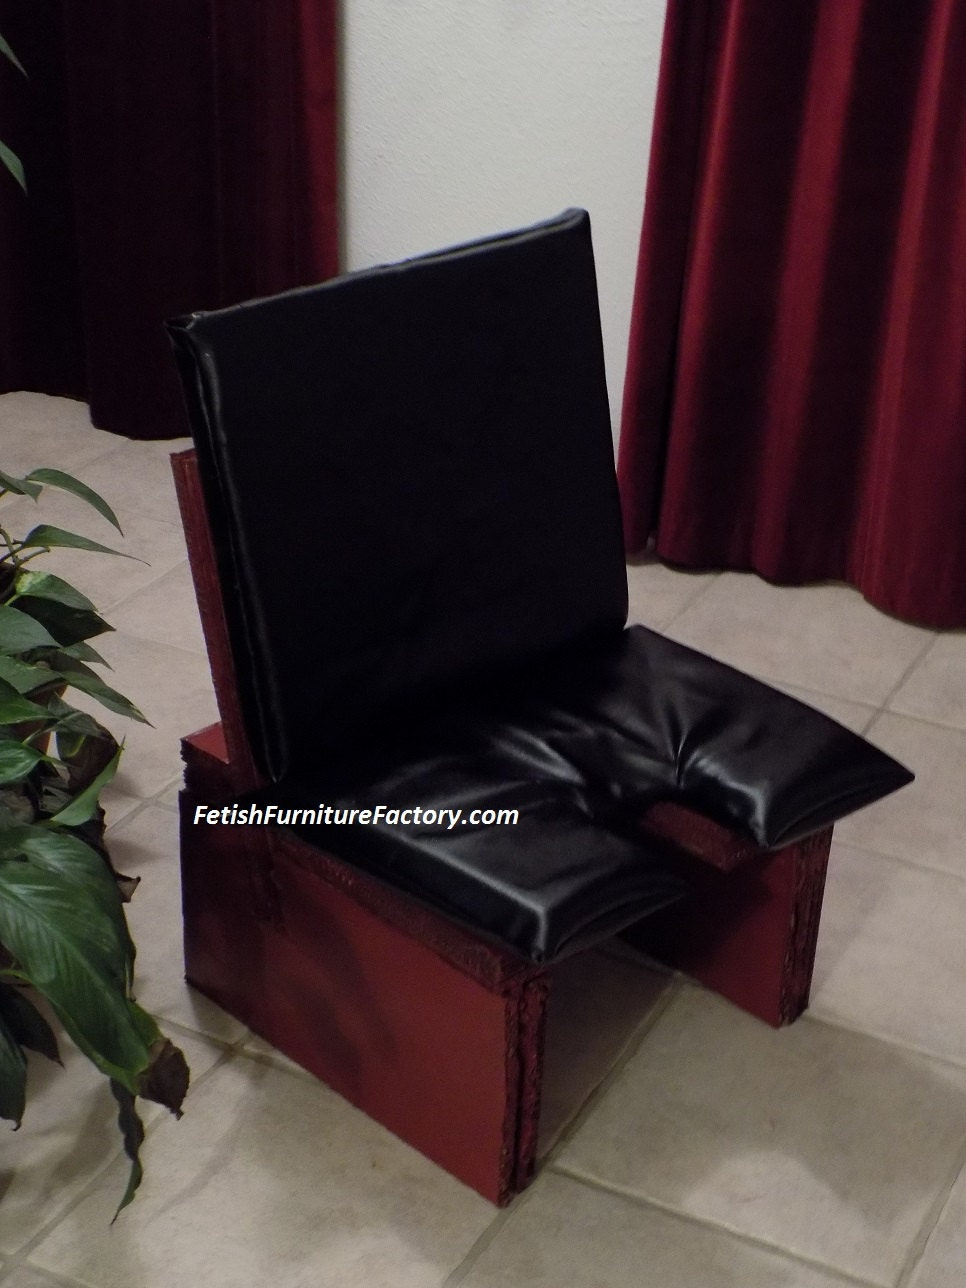 Mature Sex Chair, Smother Box For Facesitting, Sex Toys -3319